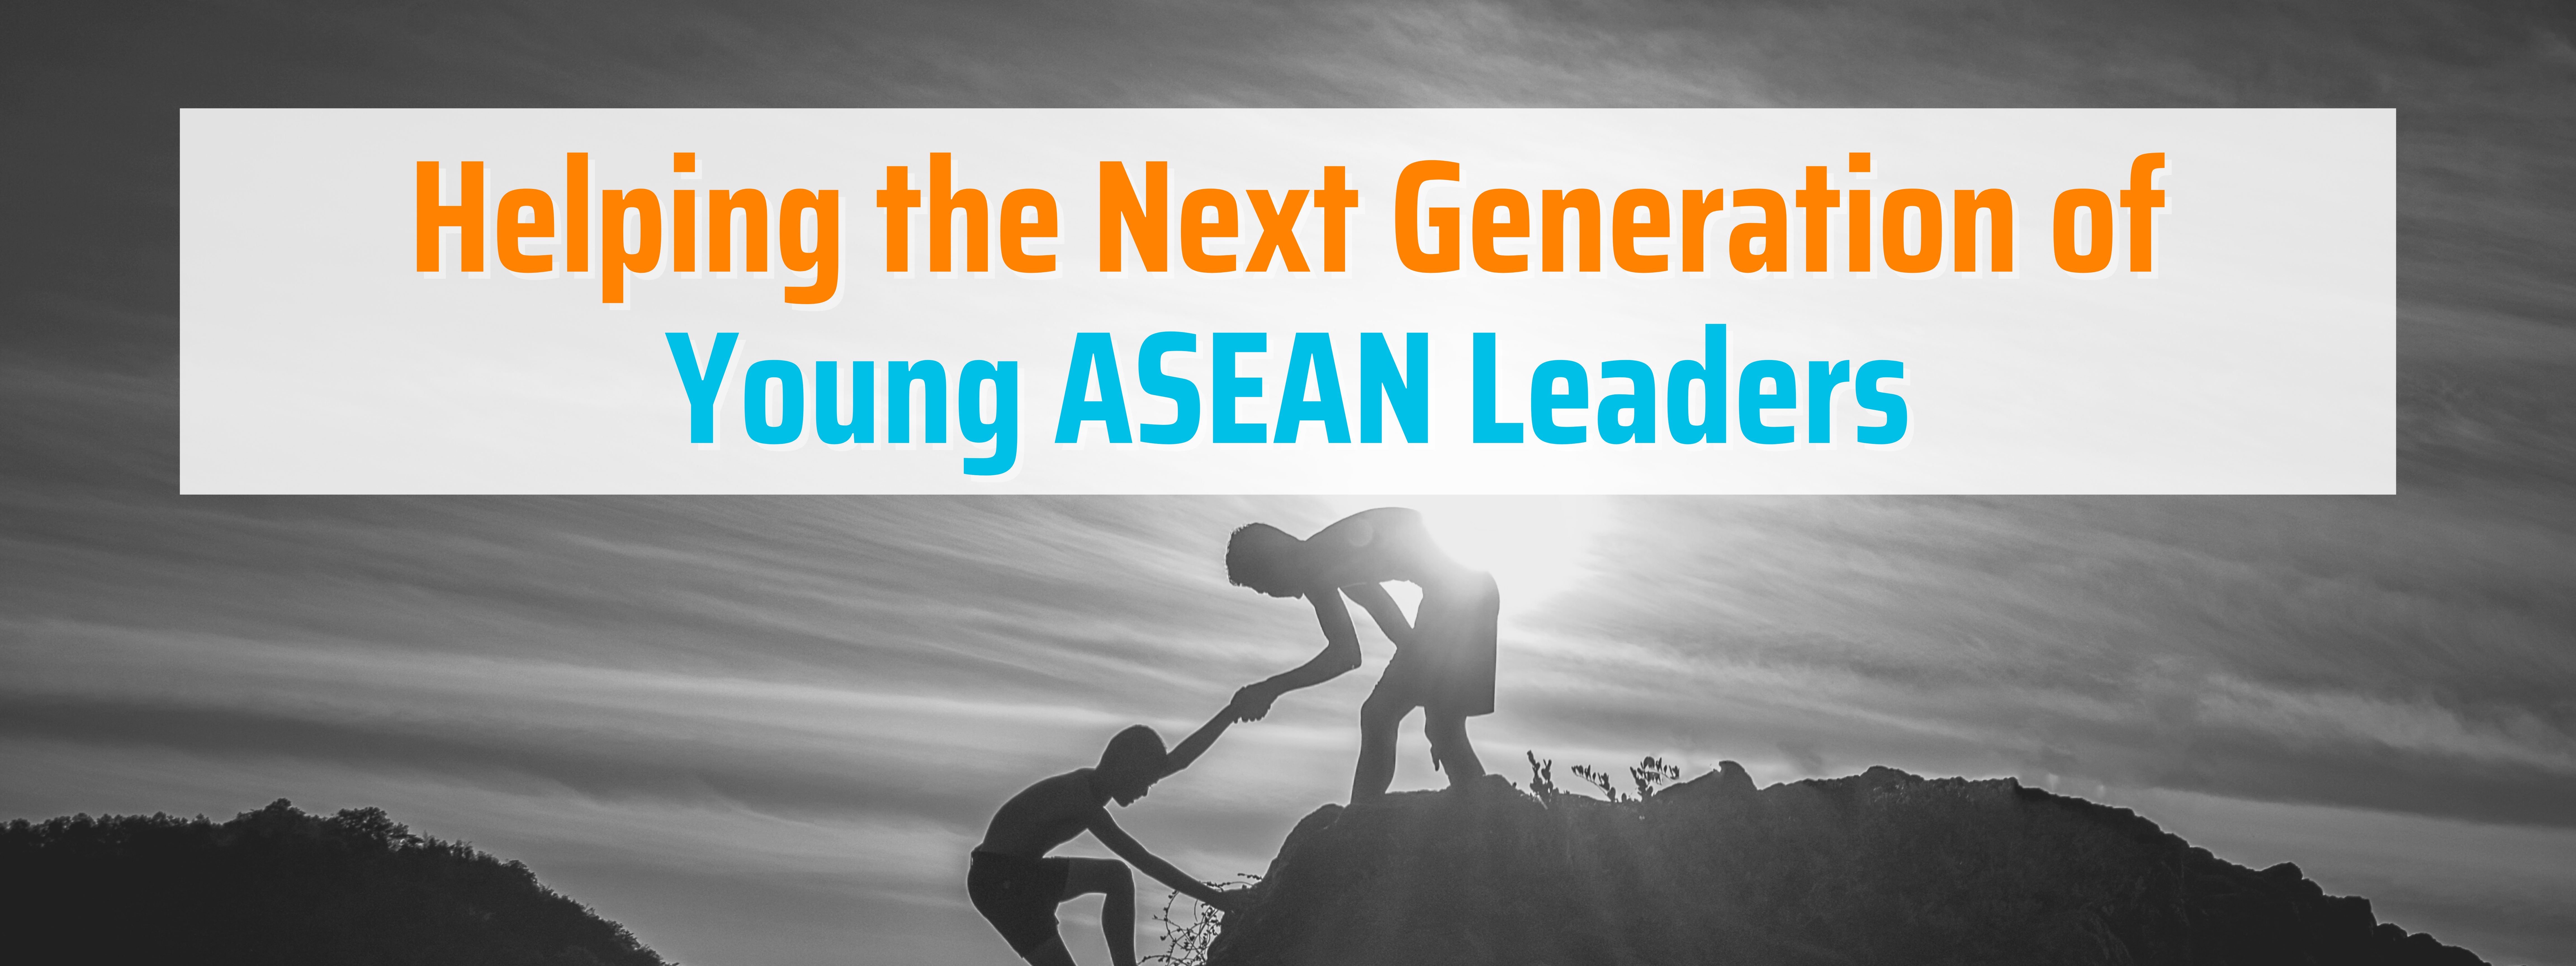 How TechSoup Asia-Pacific is Helping the Next Generation of Young ASEAN Leaders